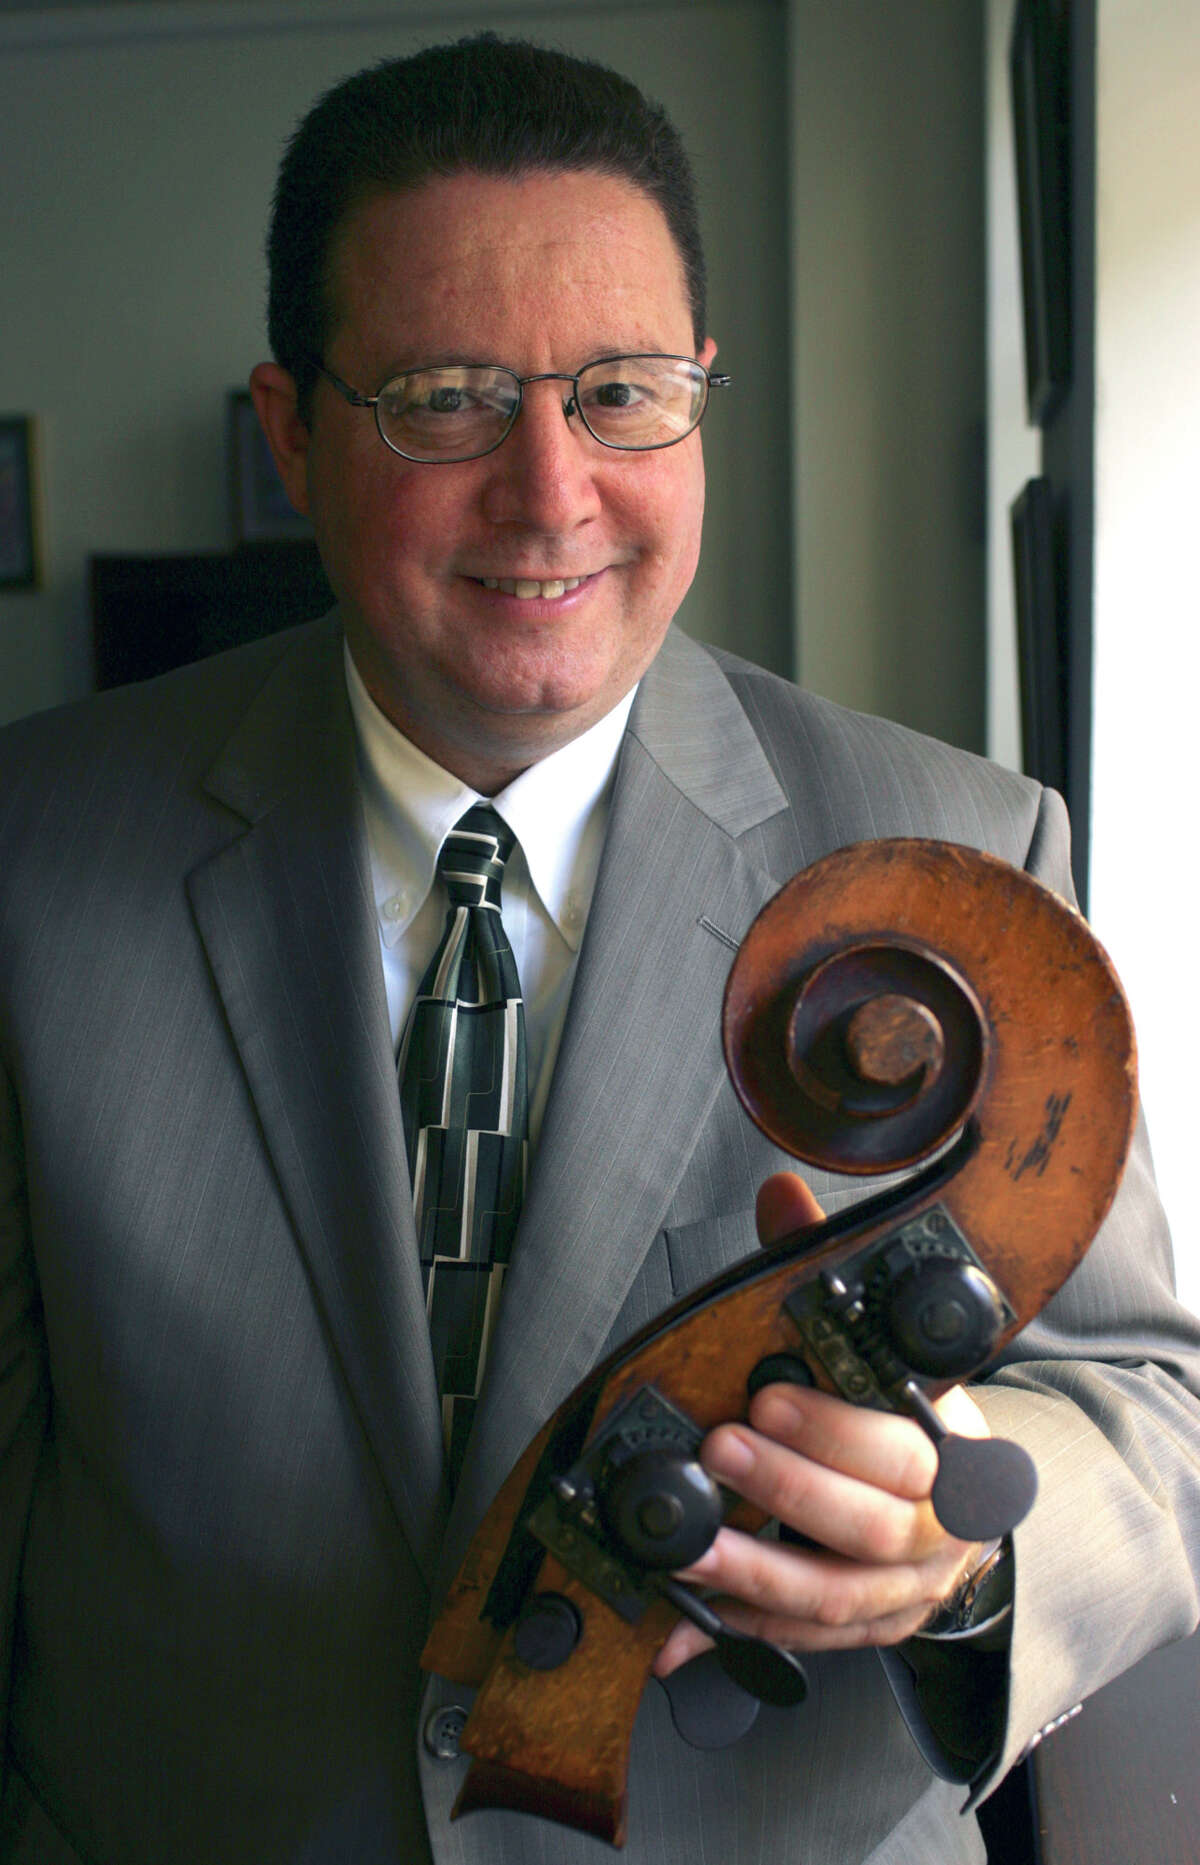 Jack Fishman, President and CEO of the San Antonio Symphony, holds the head of his double bass that broke off after an airline worker dropped the instrument years ago. He has since had the bass repaired. Friday, Nov. 14, 2008.